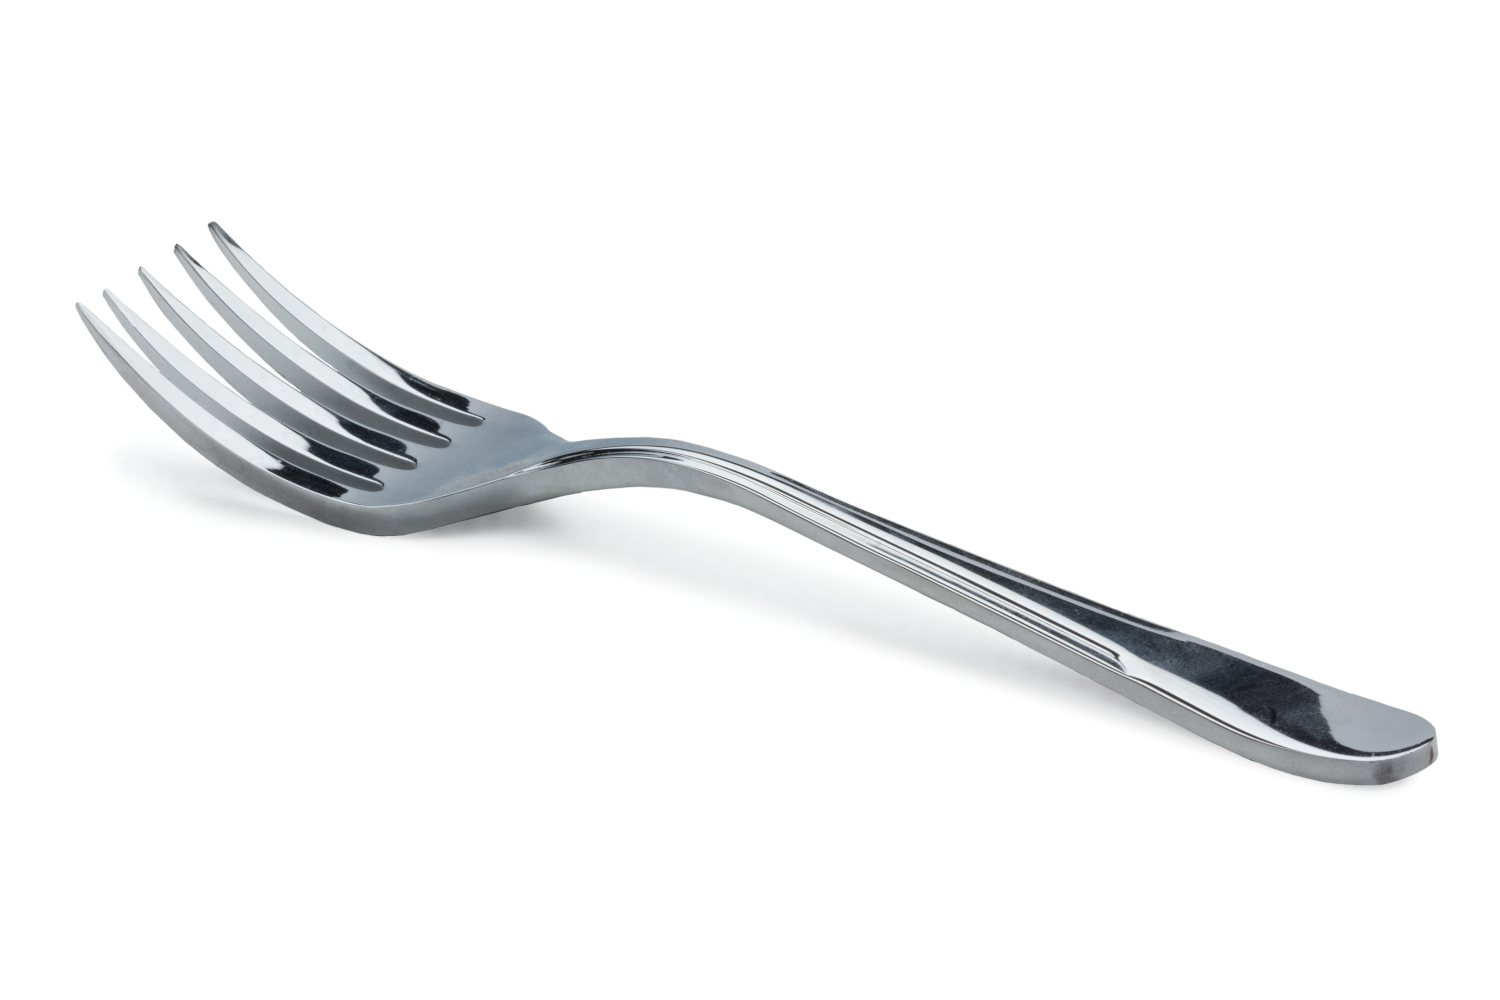 RSVP Mashing Fork by The Everyday Gourmet